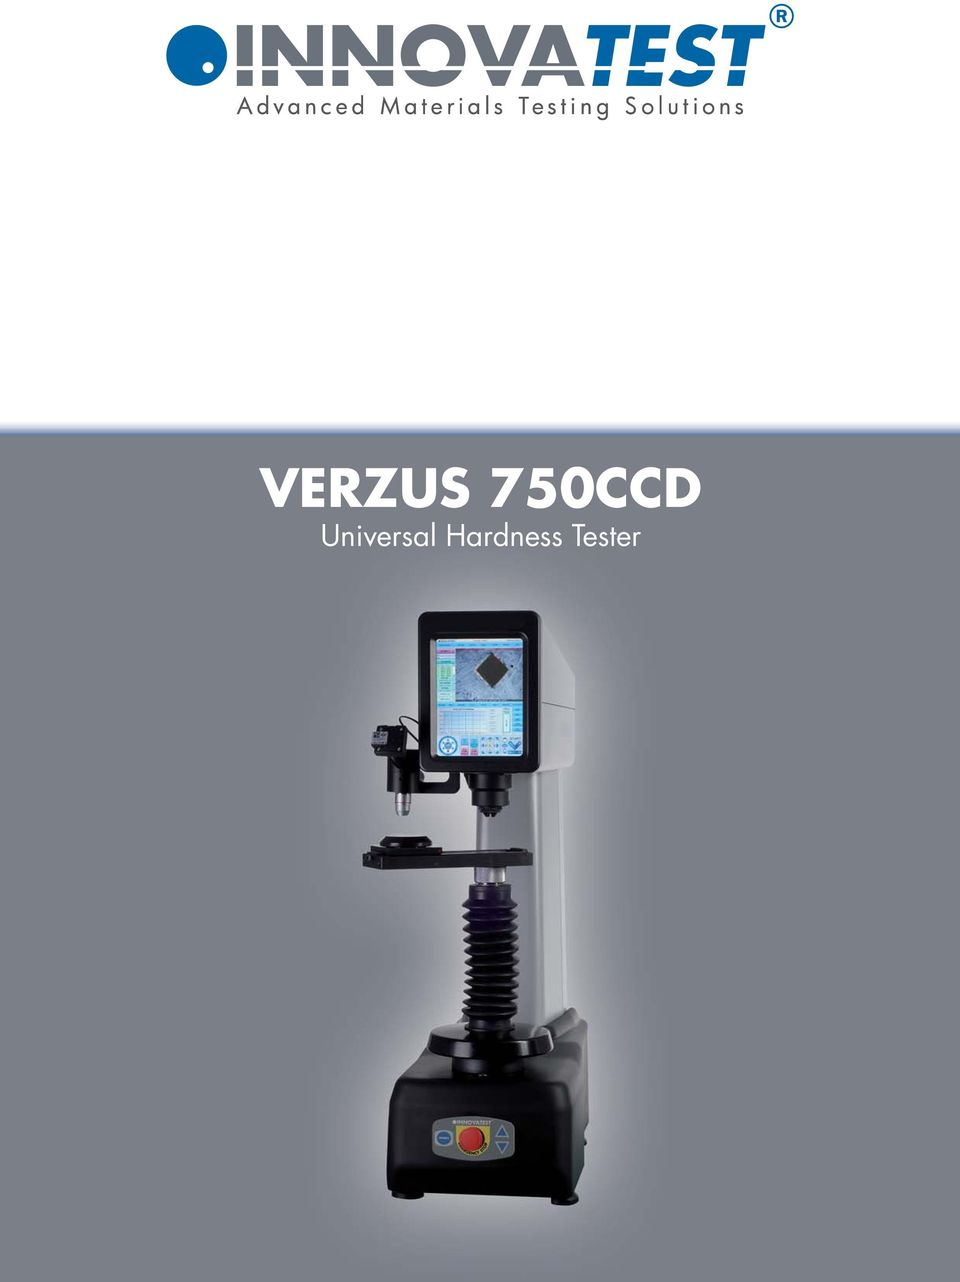 Verzus 750ccd Universal Hardness Tester Pdf Spannfixcircuitboardholder 2 Testers Microscope With High Resolution Ccd Camera Industrial 84 Lcd Touch Screen For Easy Operation